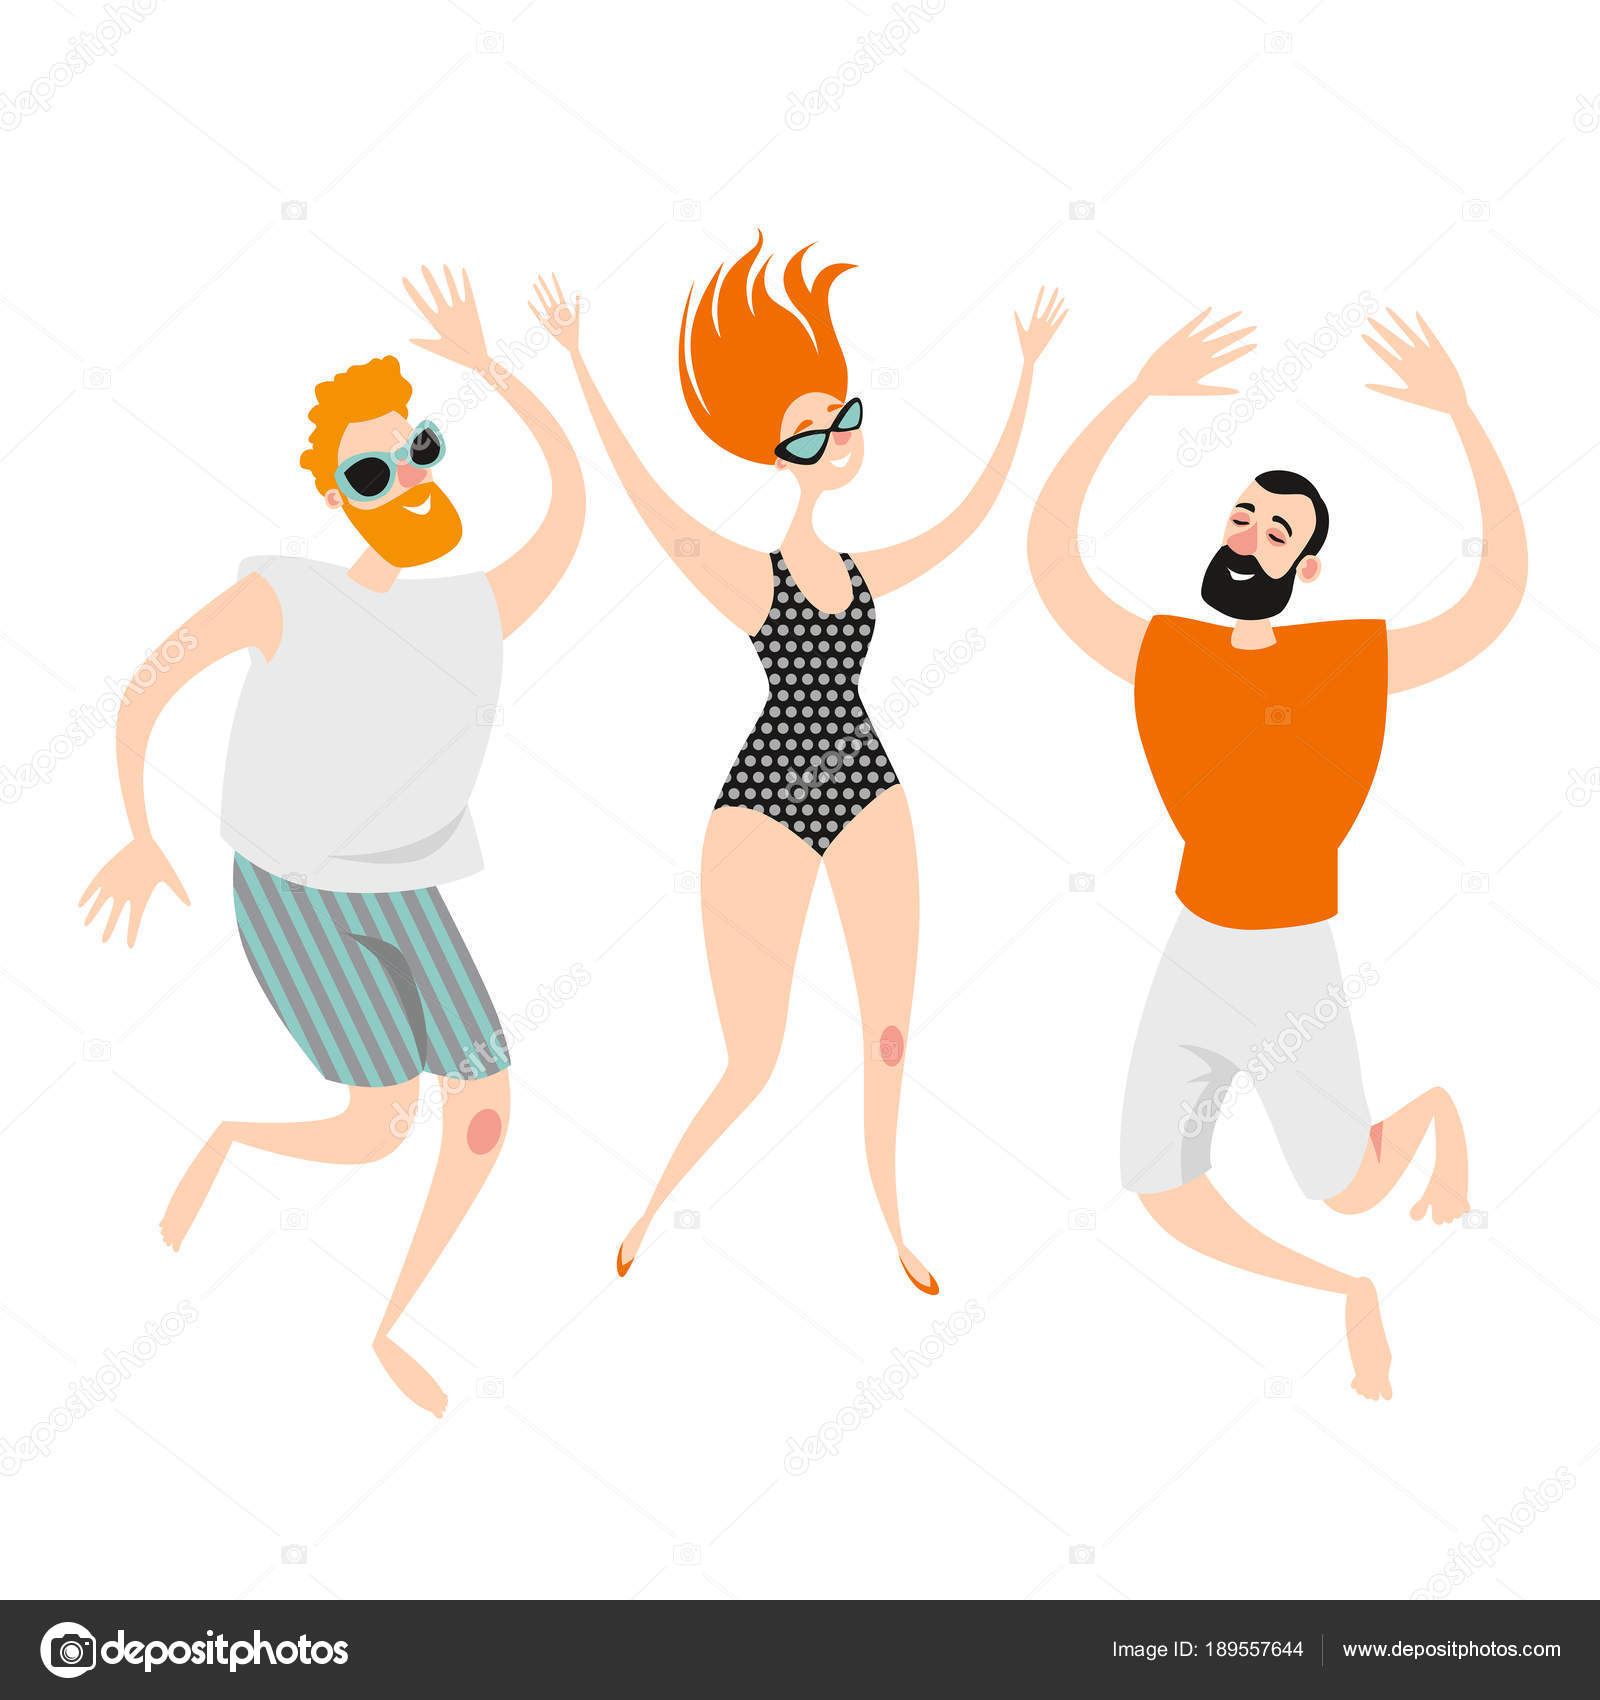 d1339c2e3a Three funny cartoon characters jumping on the beach in swimming suits and  shorts. Young boy and girl dancing at a beach party. Vector illustration on  white ...